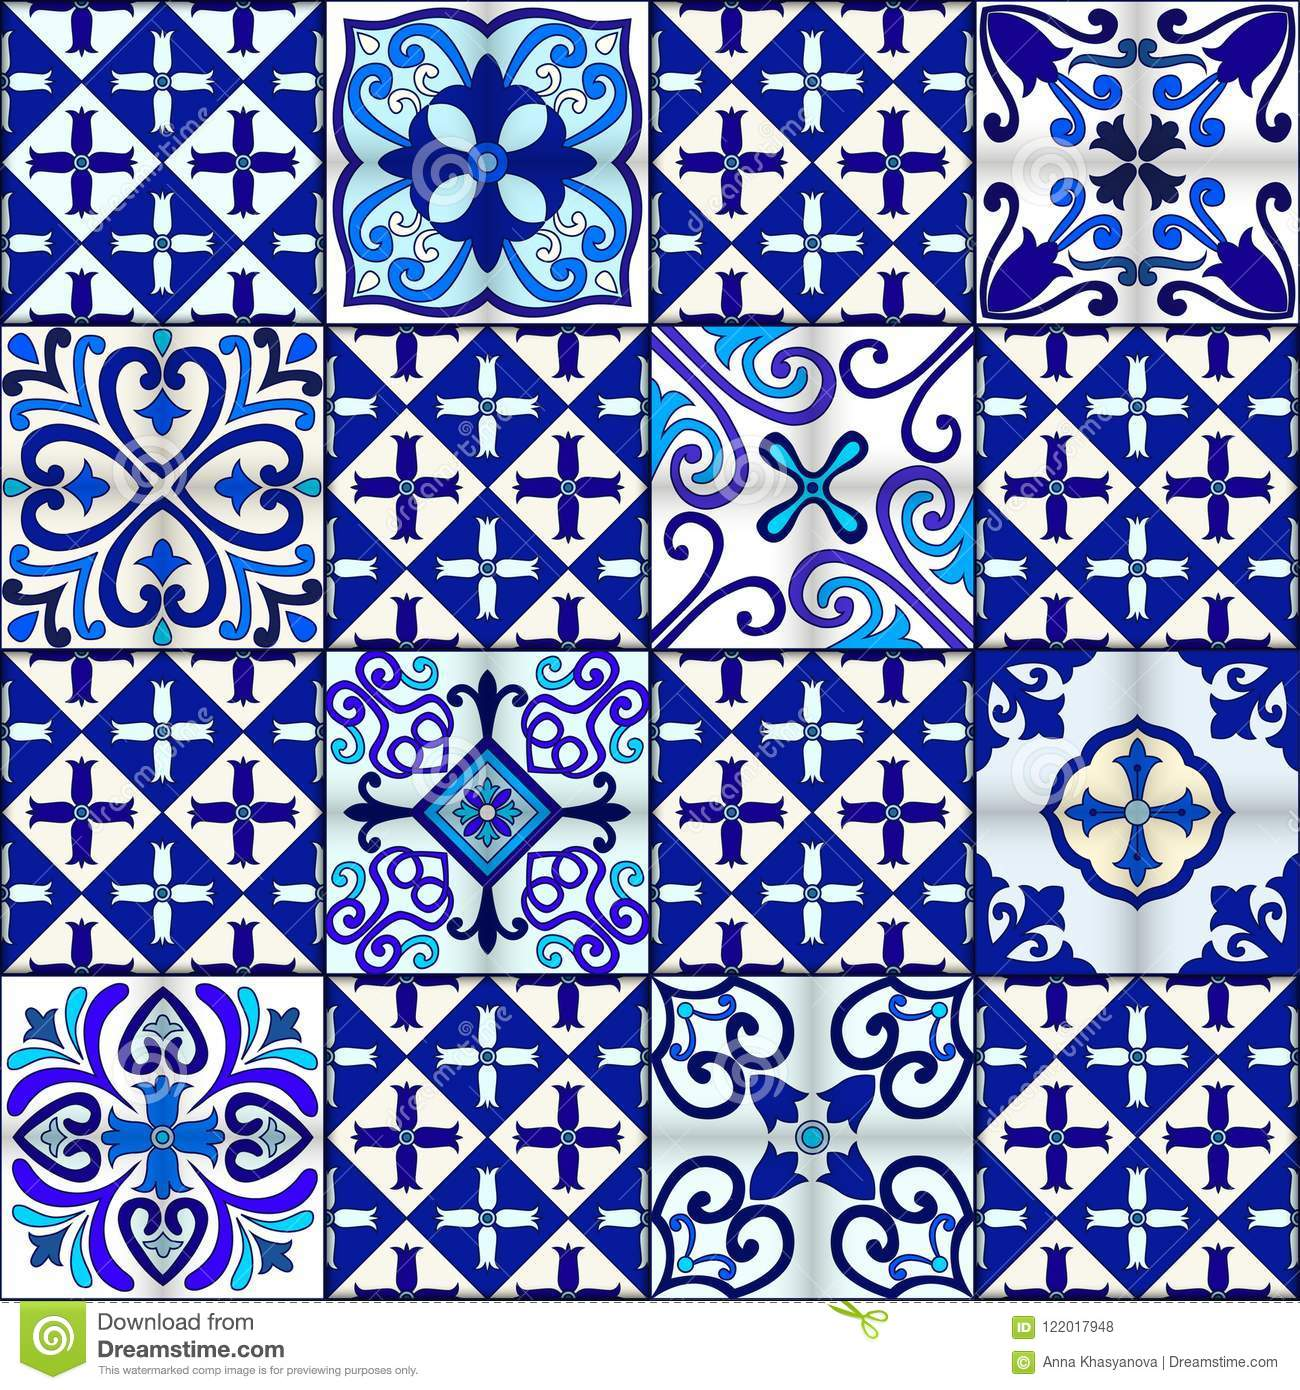 Portuguese tiles seamless pattern vector with blue and white ornaments. Talavera, azulejo, mexican, spanish or arabic motifs.